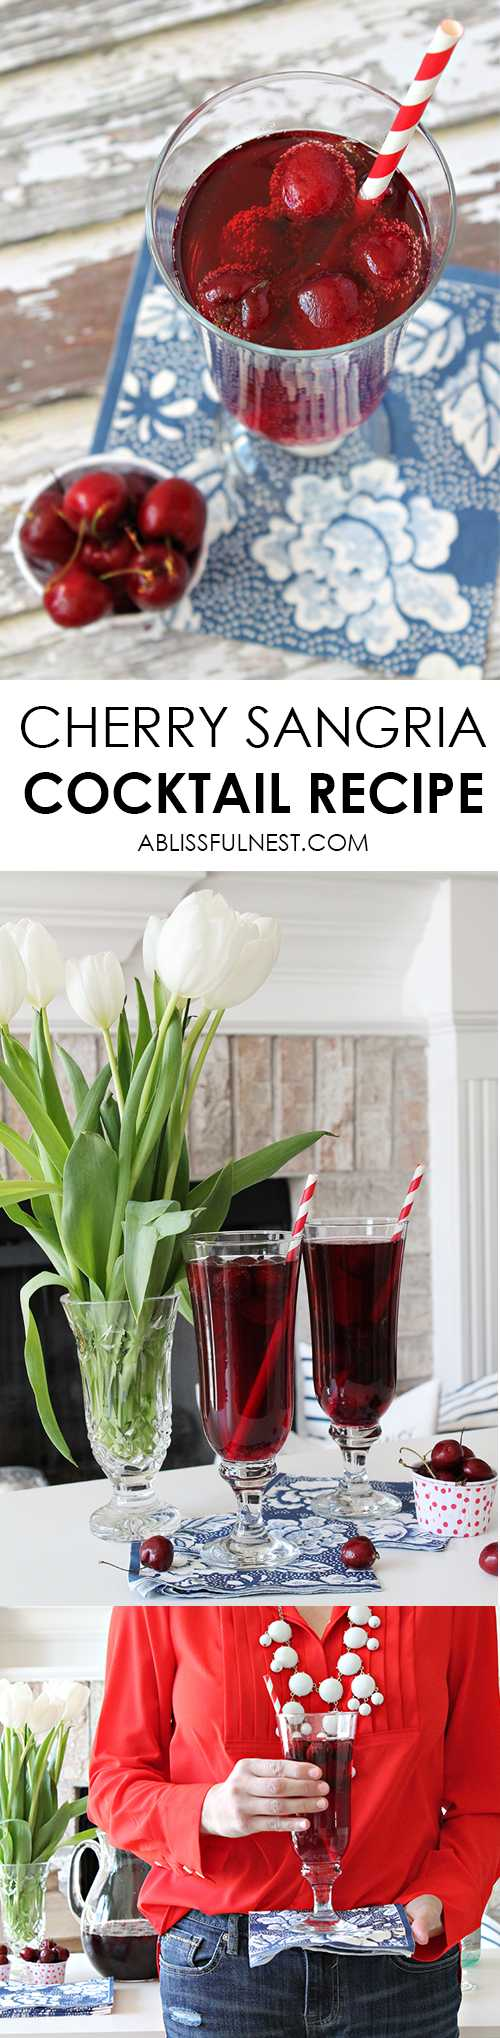 The most delicious and refreshing cherry sangria cocktail recipe! Perfect for your next dinner party with friends. Get the full recipe at ablissfulnest.com